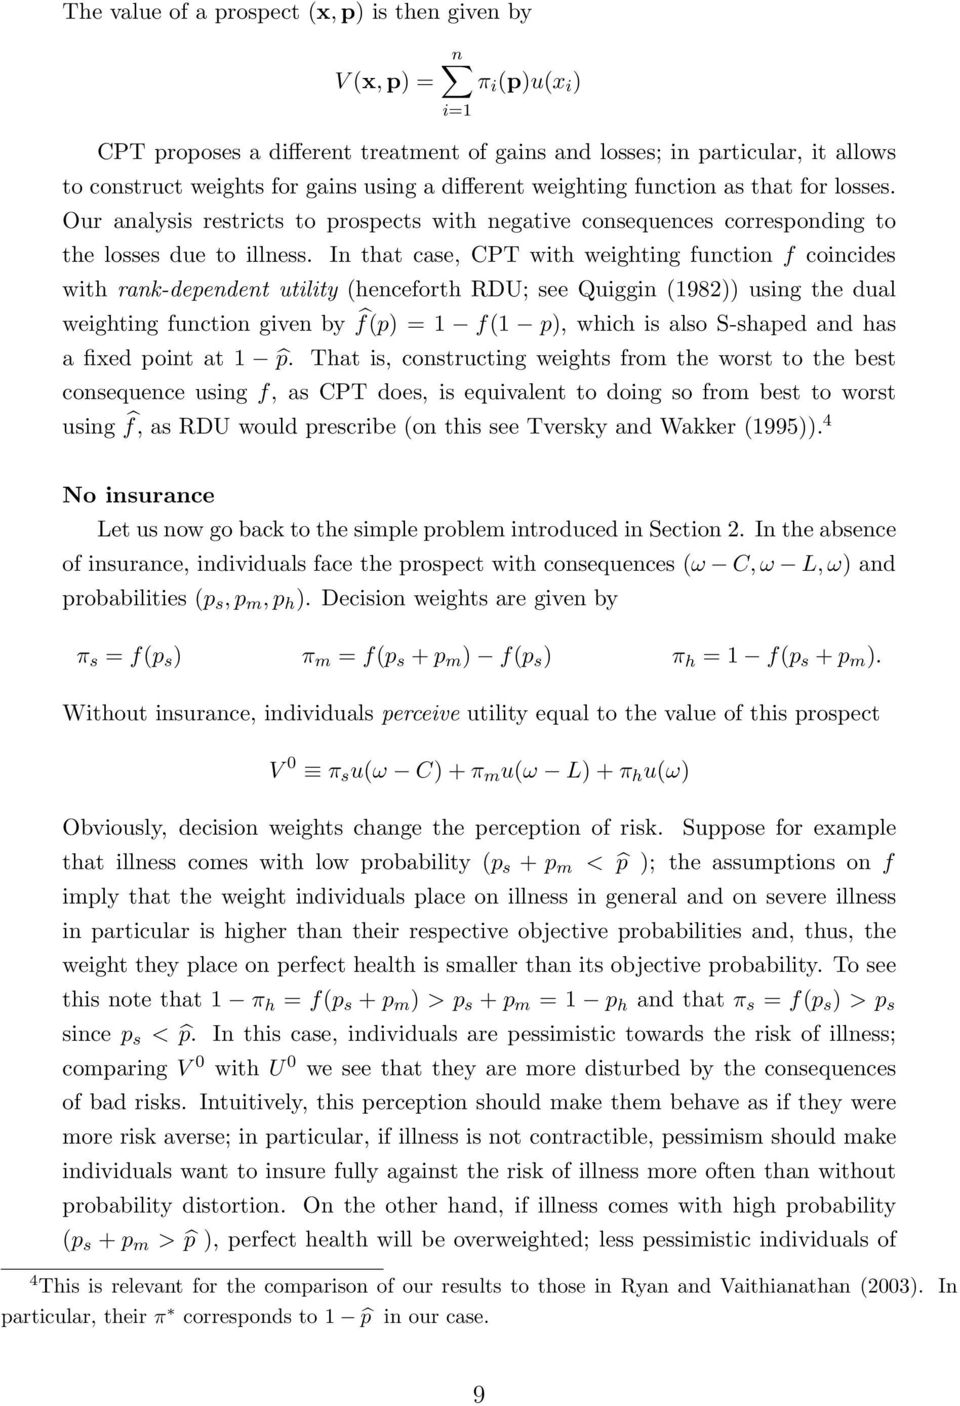 In that case, CPT with weighting function f coincides with rank-dependent utility (henceforth RDU; see Quiggin (1982)) using the dual weighting function given by f(p) = 1 f(1 p), which is also